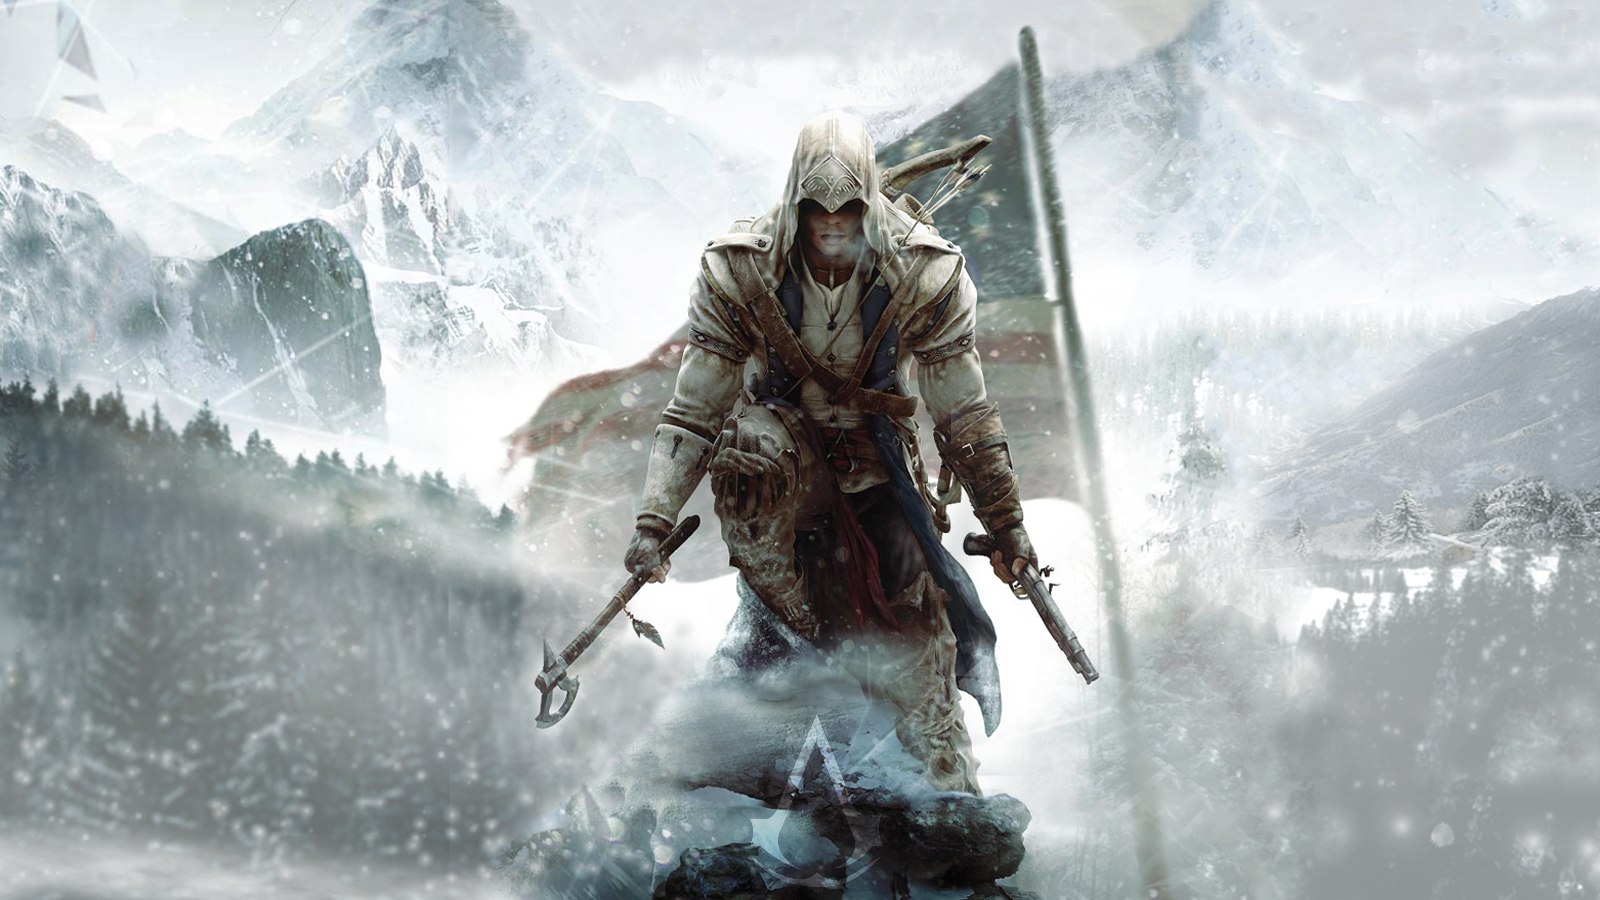 Free Download Assassins Creed 3 Wallpaper By Pablodoogenfloggen